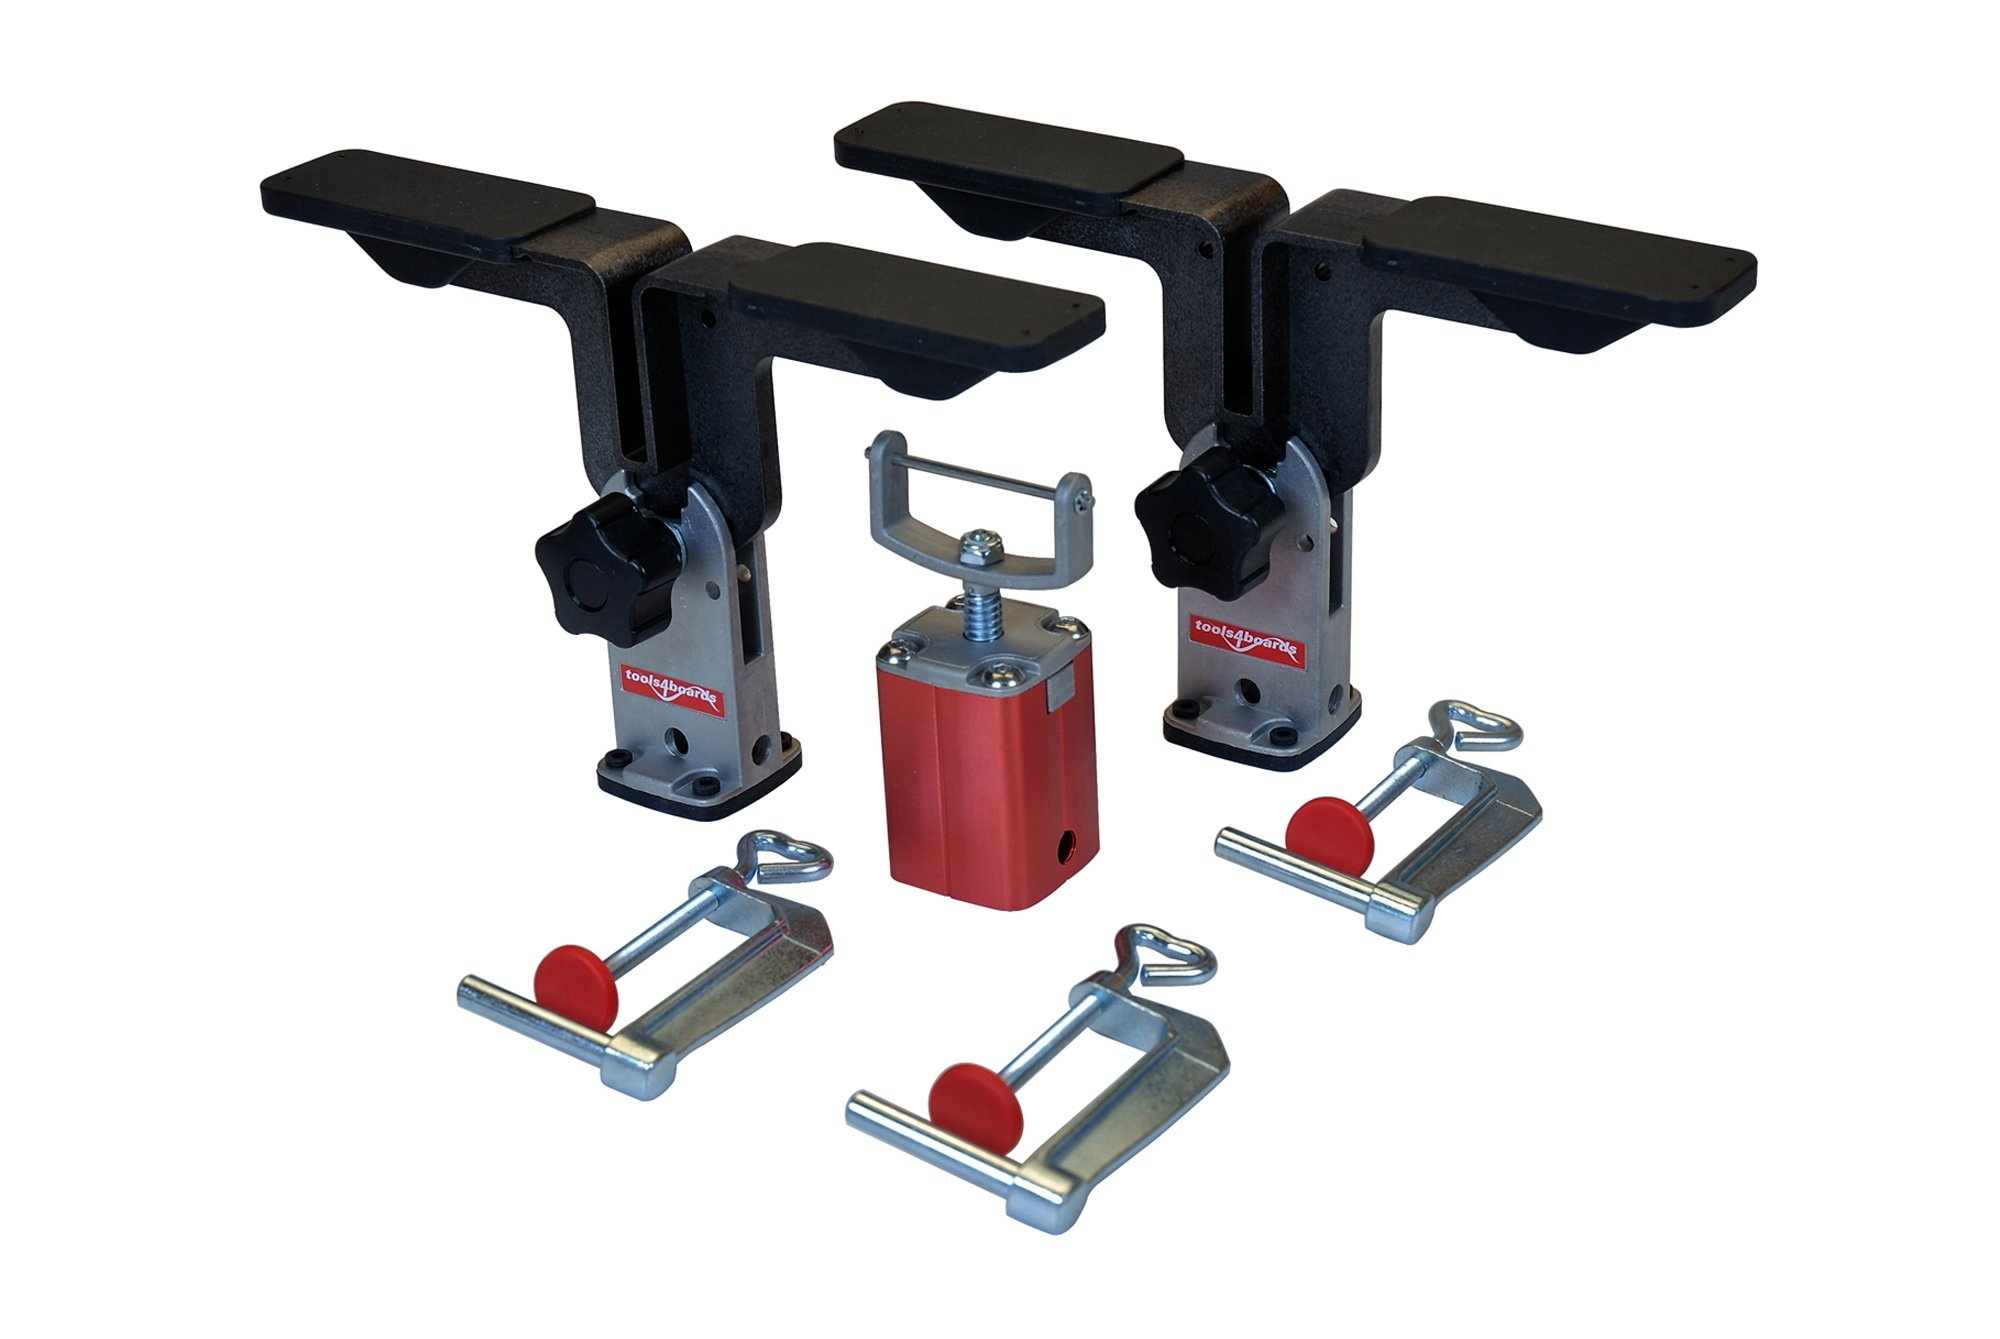 Tools4Boards SkiVise XC Cross Country Ski Vise